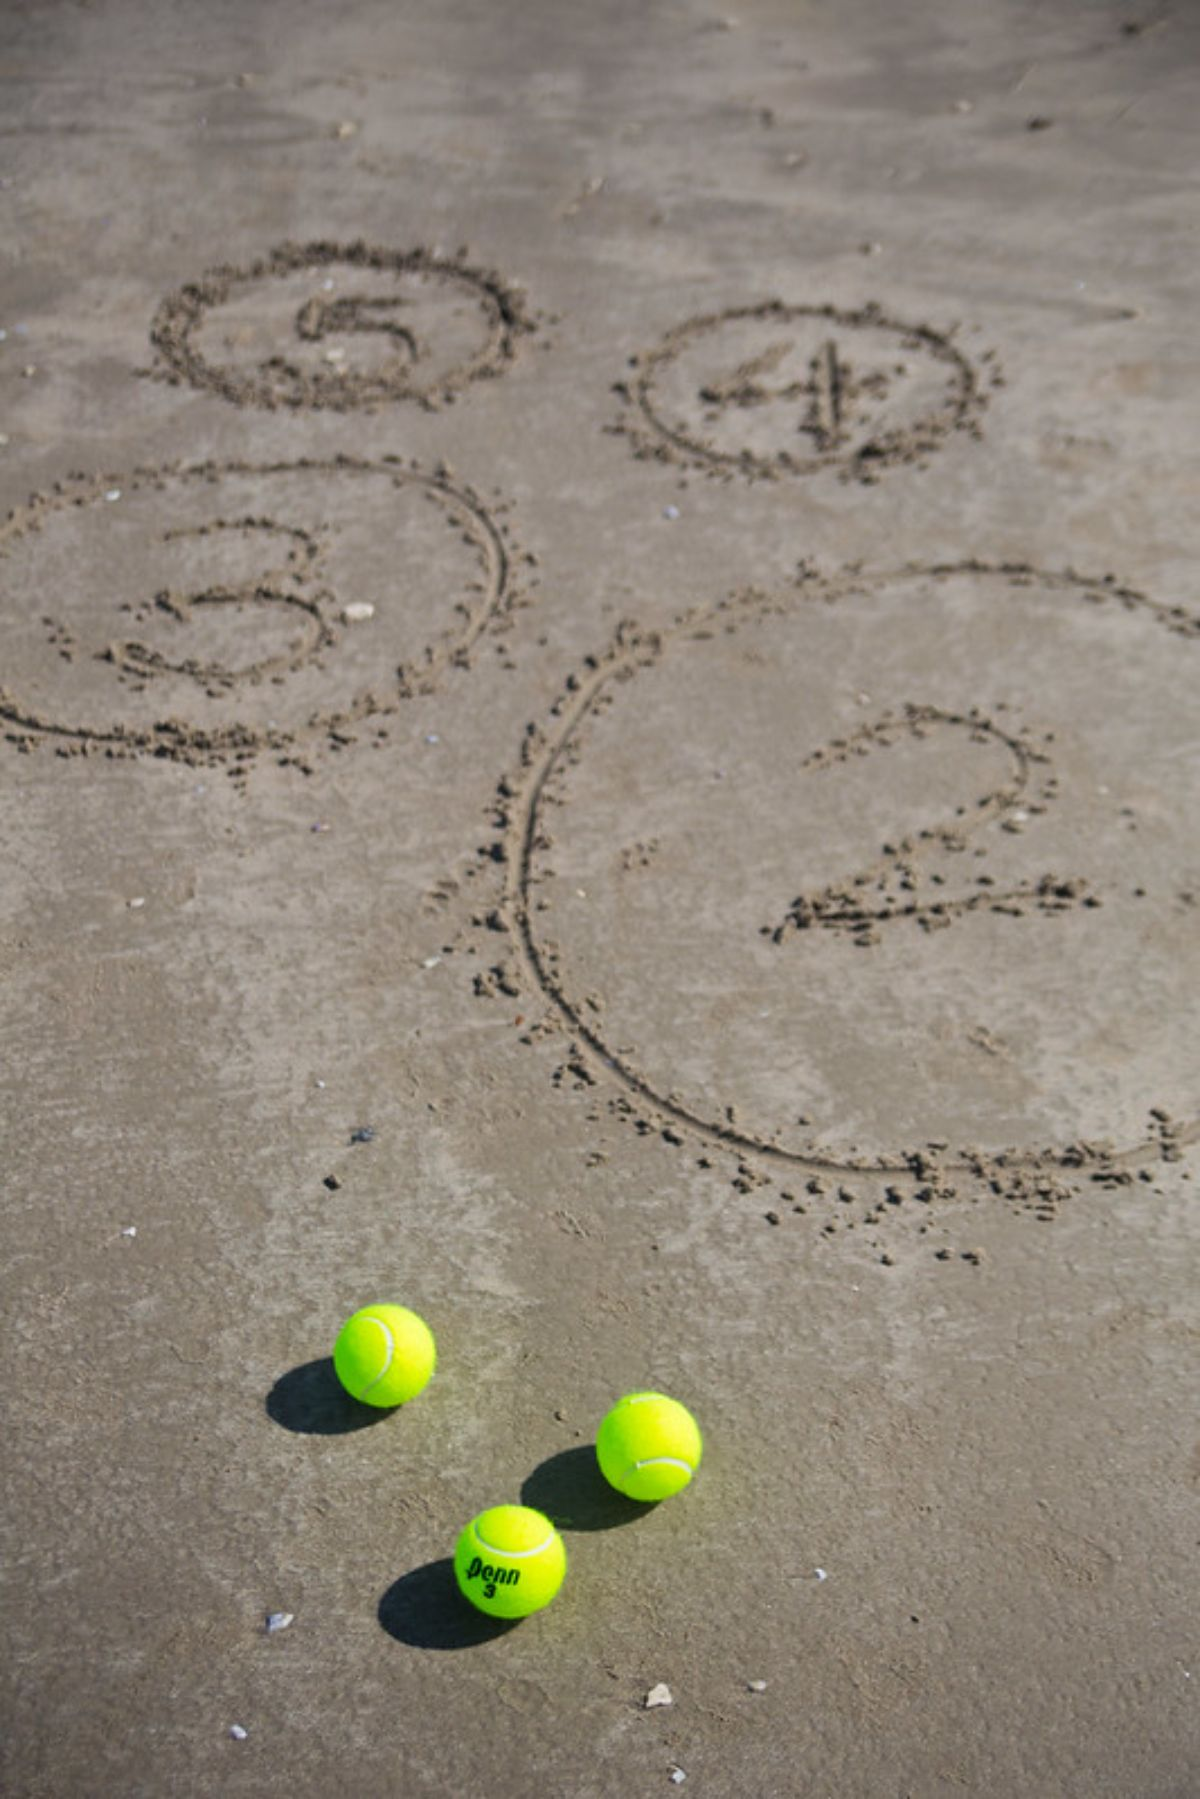 3 tennis balls sit on sand in front of the numbers 5, 4, 3, and 2 drawn circled in the sand